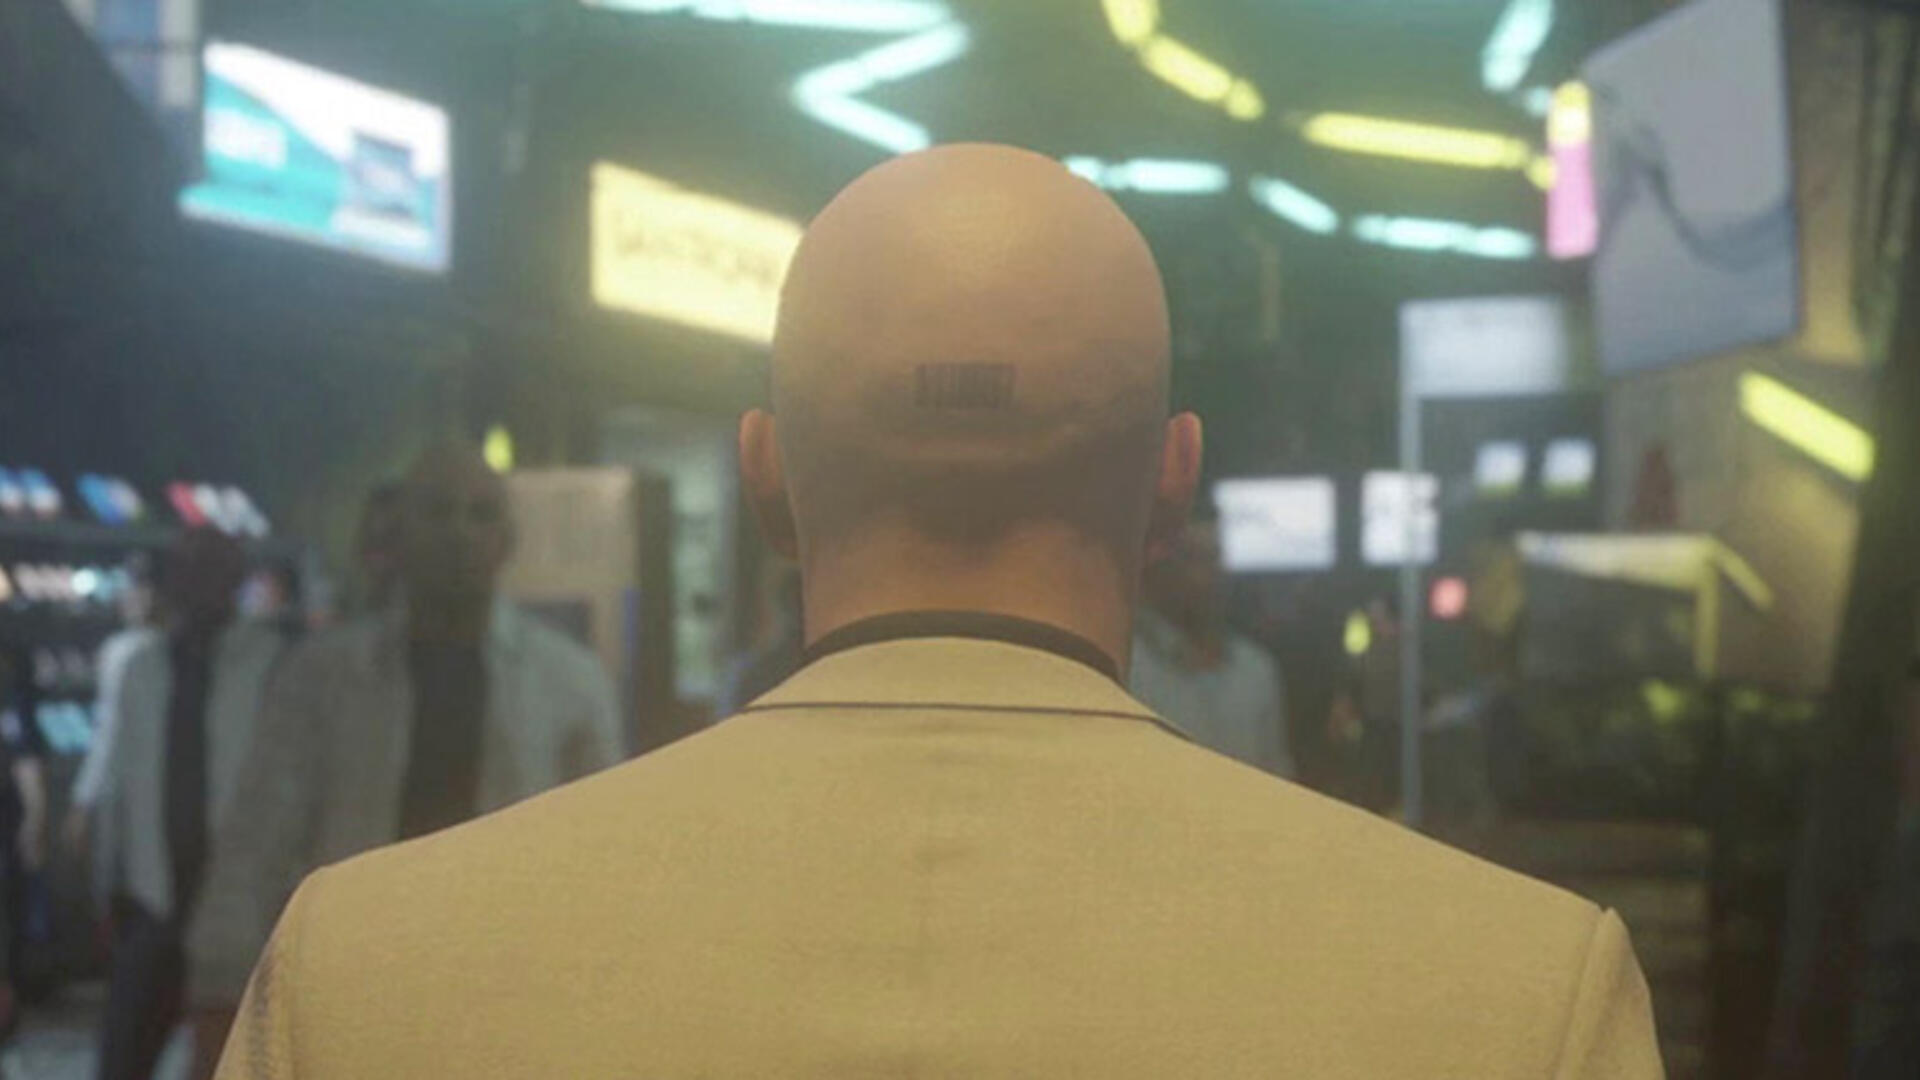 Hitman Continues to Invest in Ephemera With Bangkok-Based Episode 4